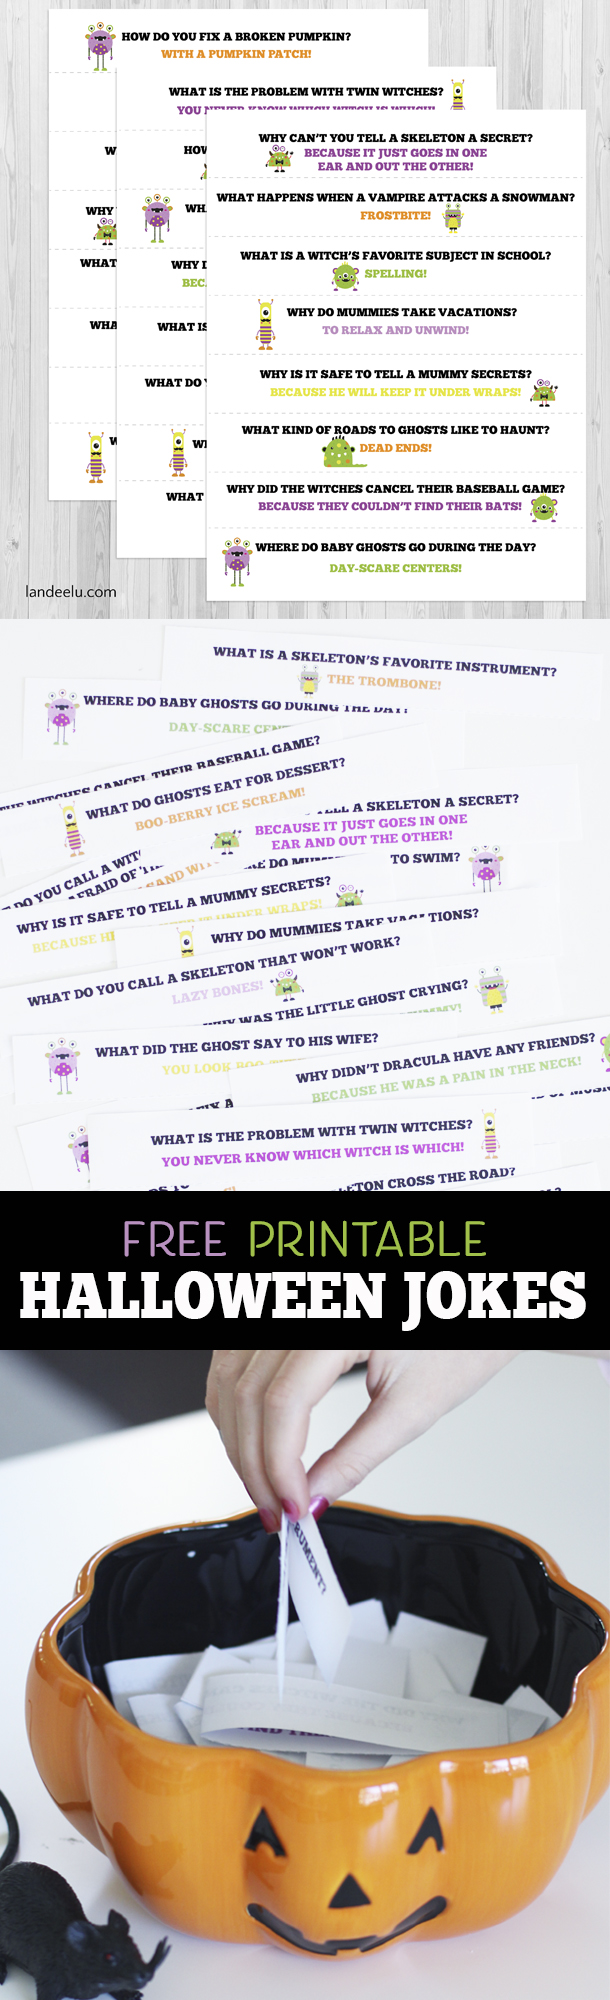 Free Printable Halloween Jokes for Kids - landeelu.com